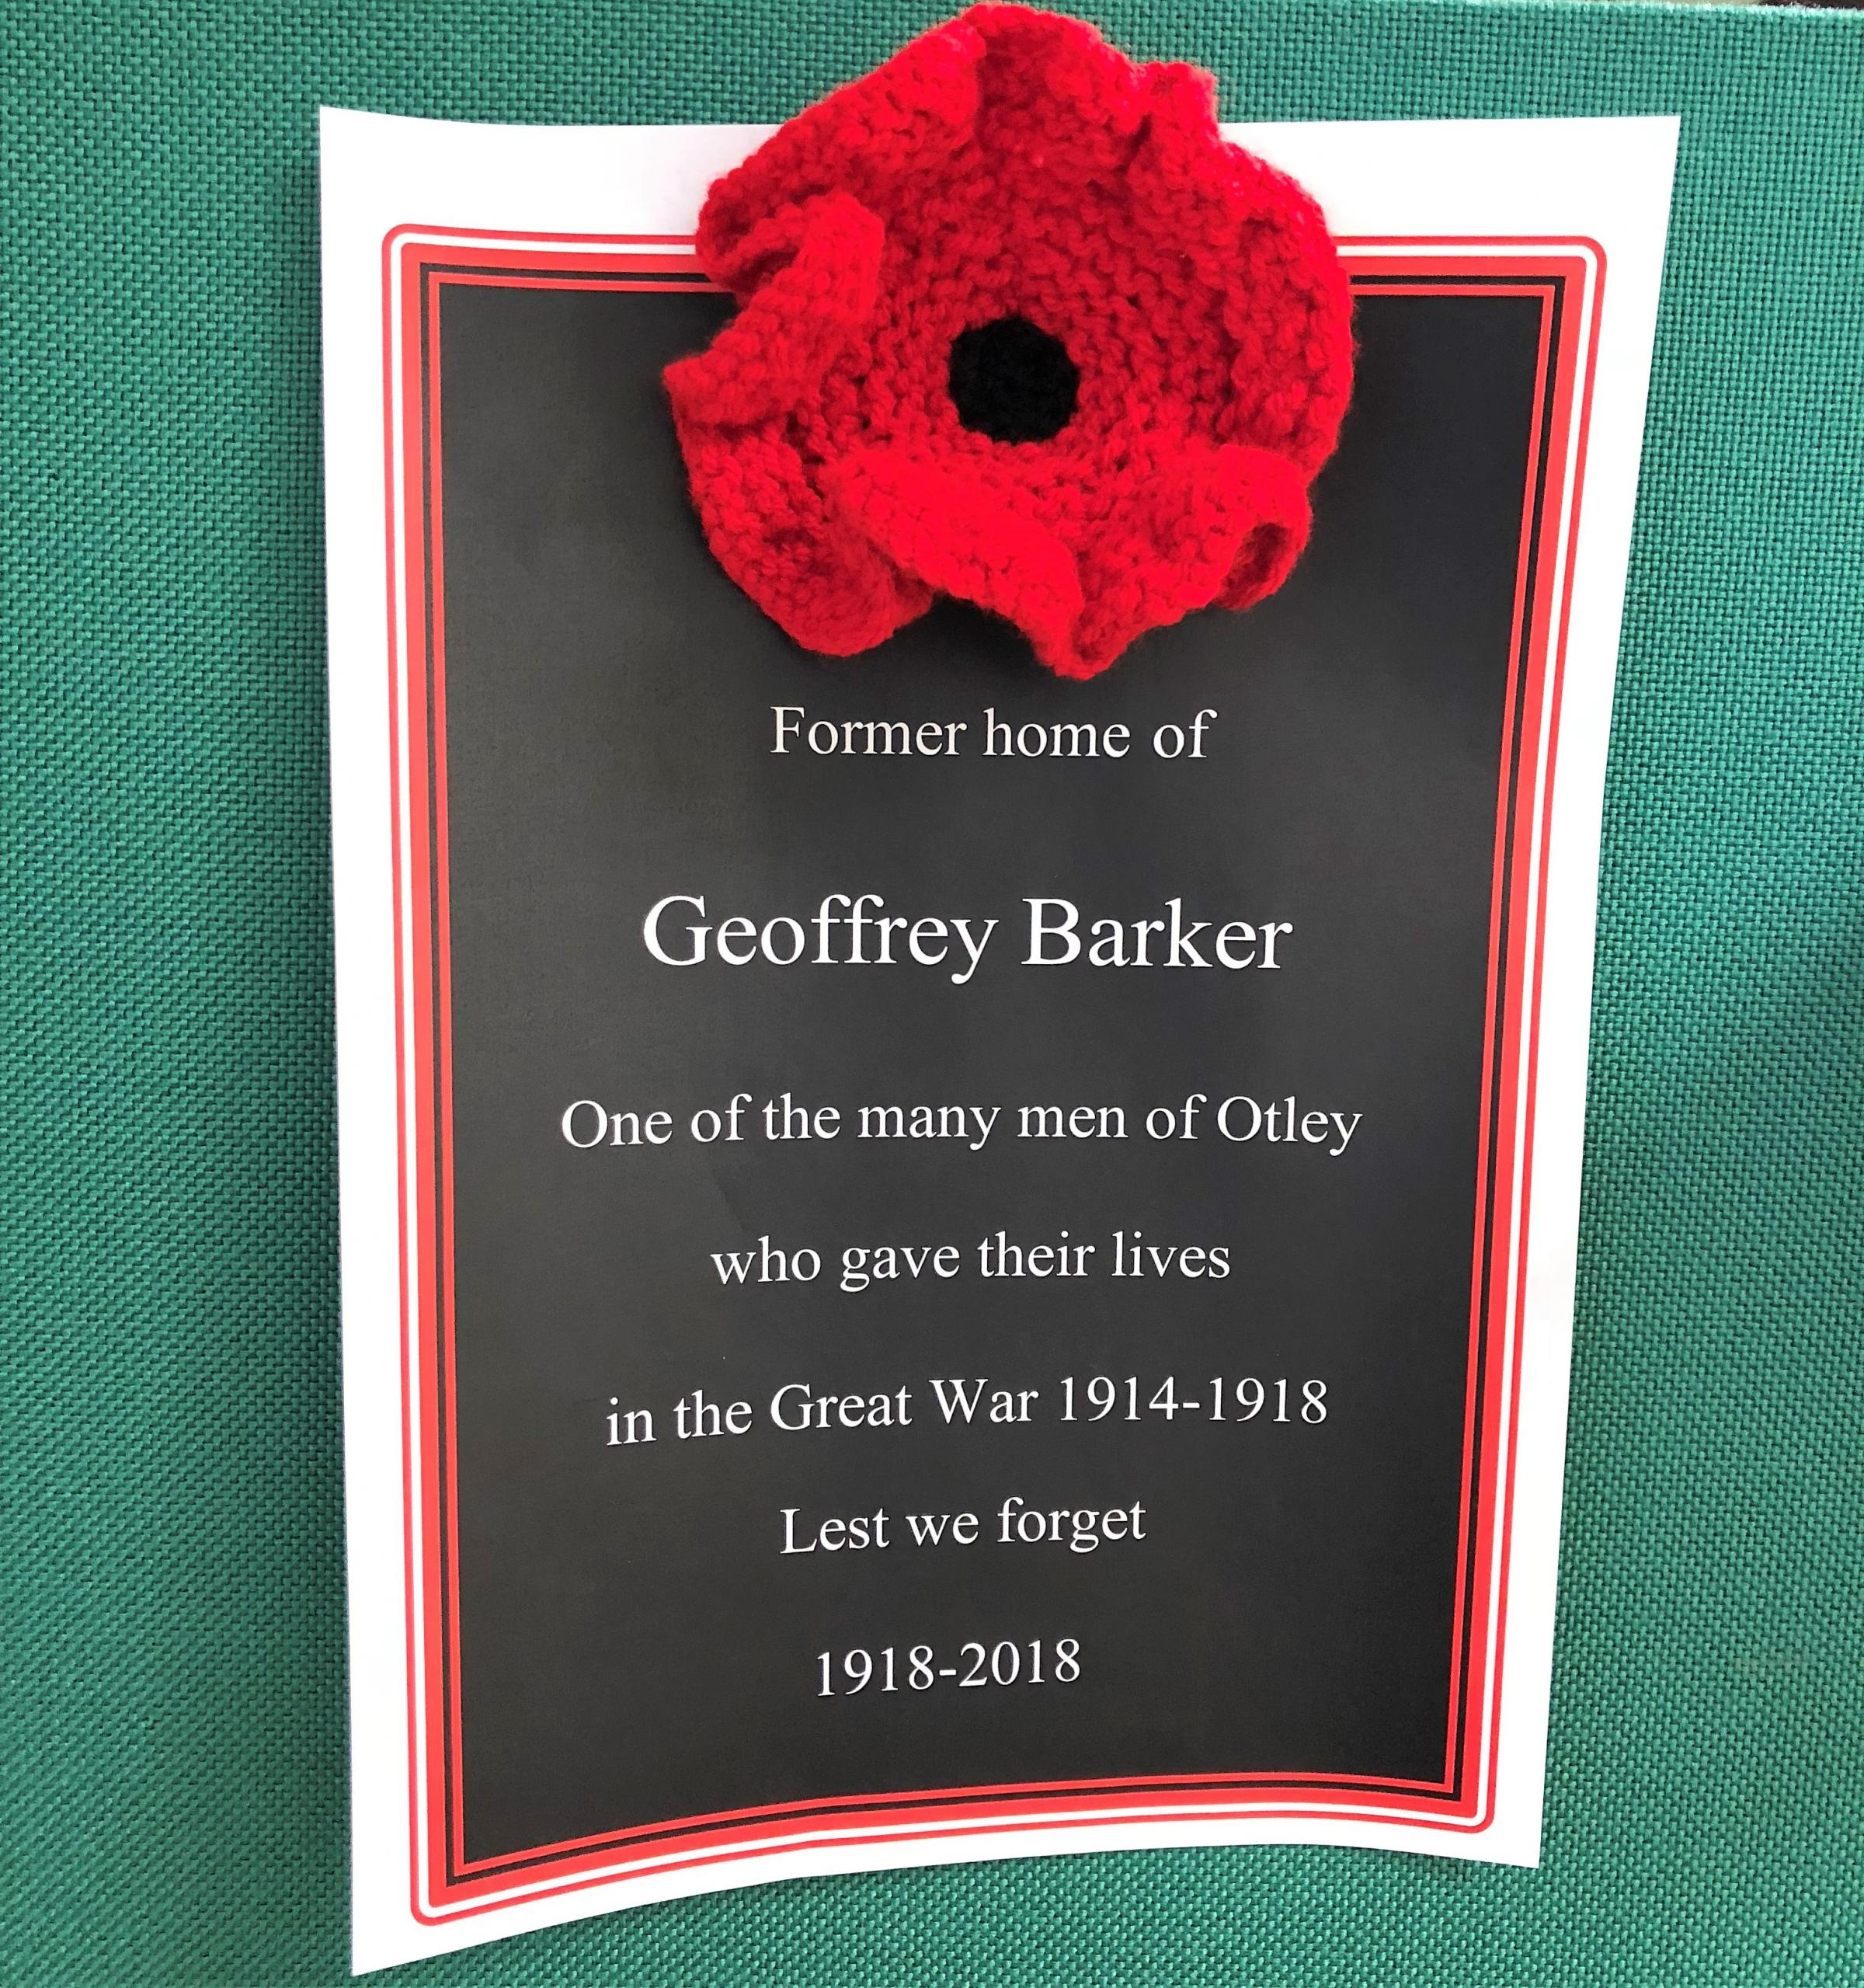 One of the memorial posters that will be displayed in Otley on Remembrance Day